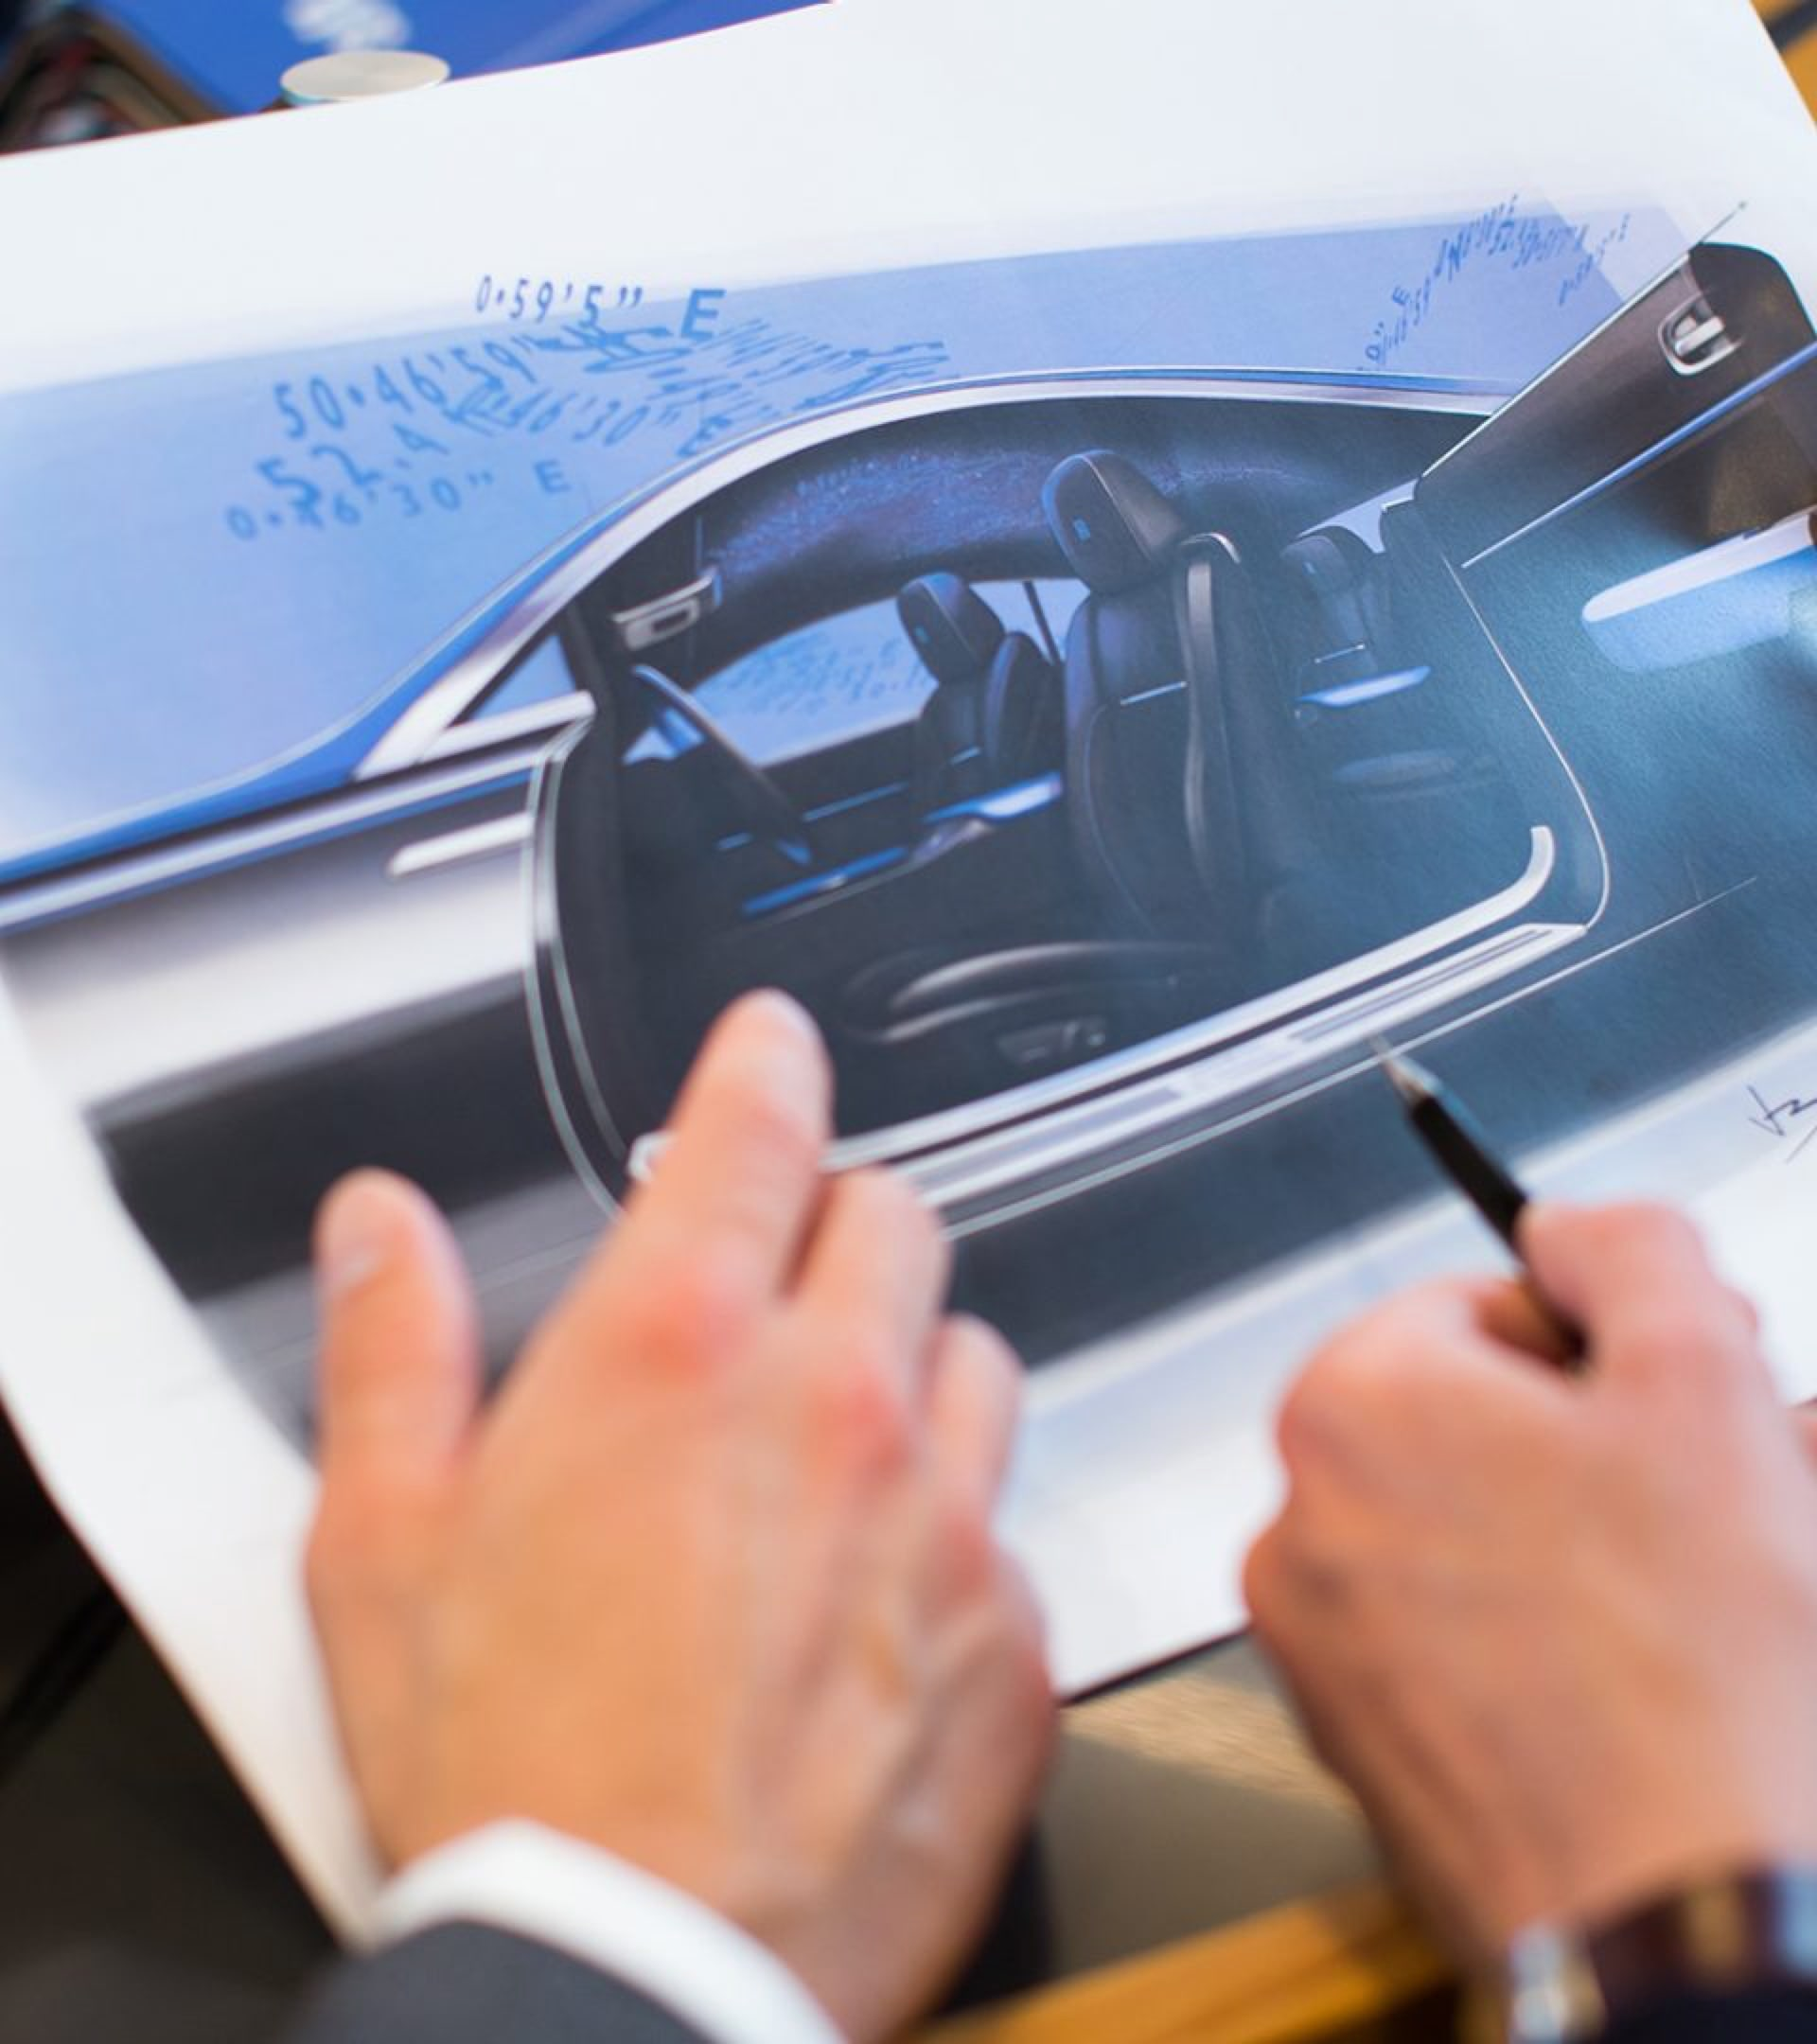 Two of Rolls-Royce's talented designers sharing creative thoughts and designs